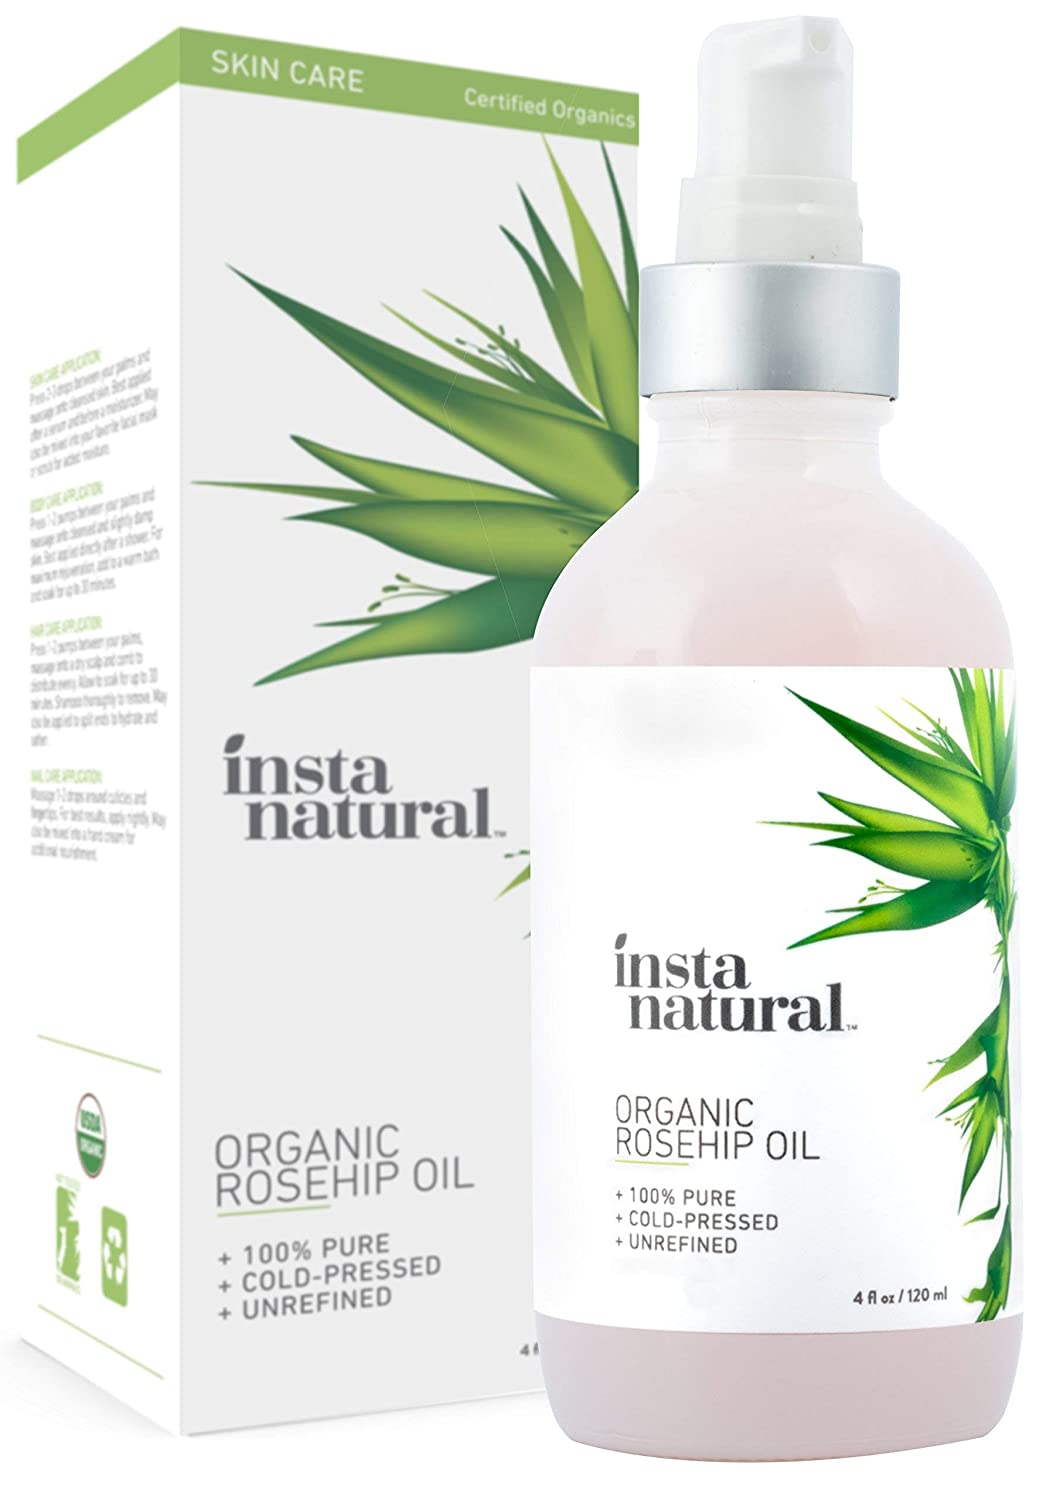 Organic Rosehip Seed Oil - 100% Pure, Unrefined Virgin Oil - Natural Moisturizer for Face, Skin, Hair, Stretch Marks, Scars, Wrinkles, Fine Lines & Nails